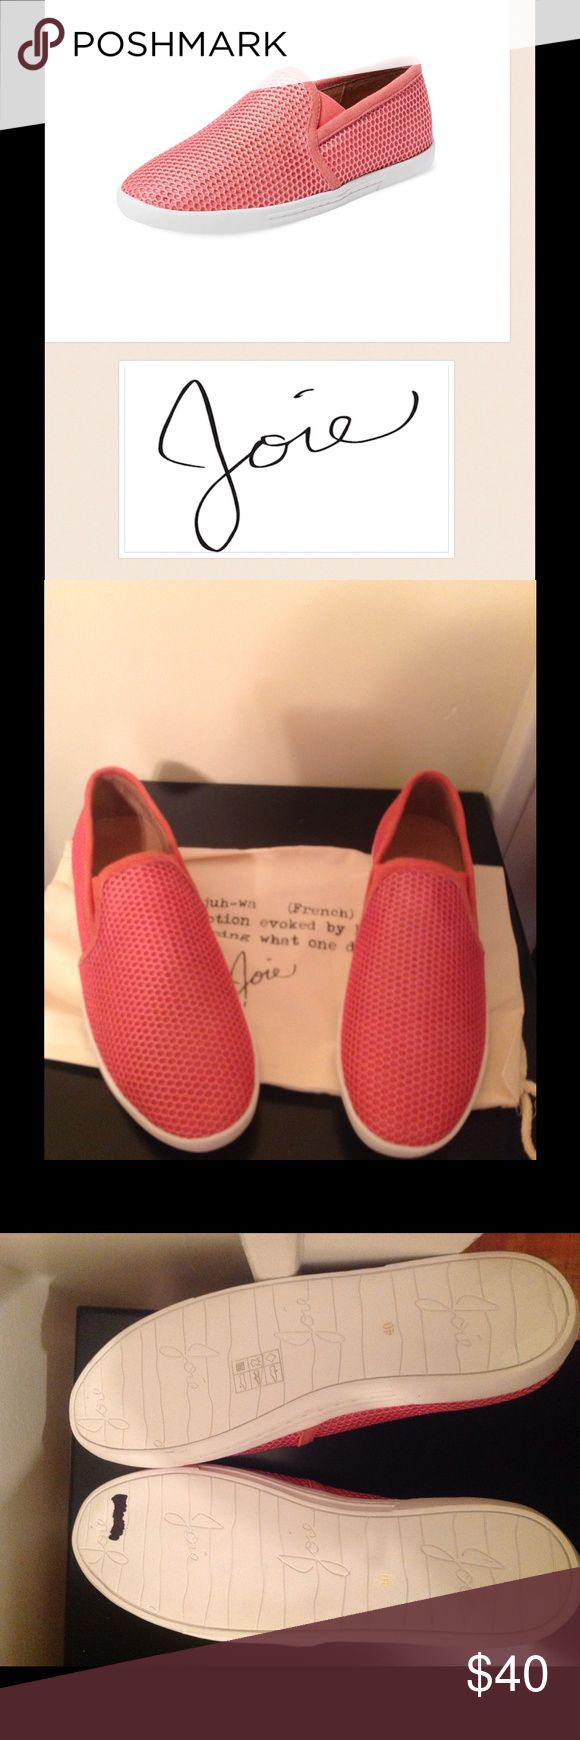 "NEW Joie ""Kidmore"" preppy pink slip-on shoes. NEW Joie ""Kidmore"" preppy pink slip-on shoes.  Easy slip-on wear with rounded toe, leather lining, lightly padded leather footbed, and rubber outsole.  No box or storage bag.  Writing on bottom of shoe.  No trades. Joie Shoes Sneakers"